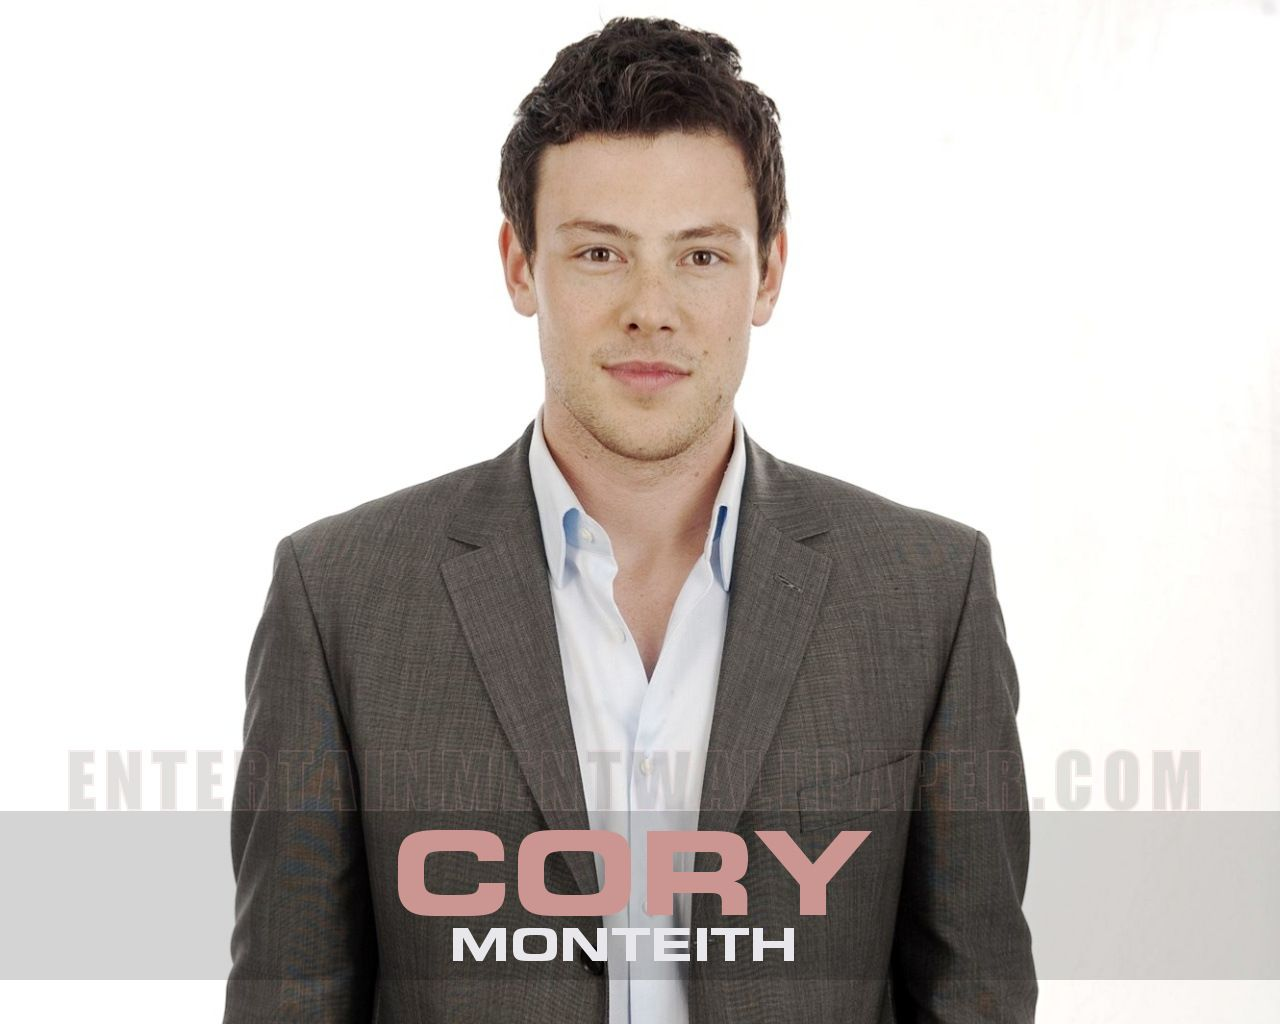 Cory monteith wallpaper 30025062 size 1280x1024 more cory monteith cory monteith wallpaper 30025062 size 1280x1024 more cory monteith voltagebd Choice Image